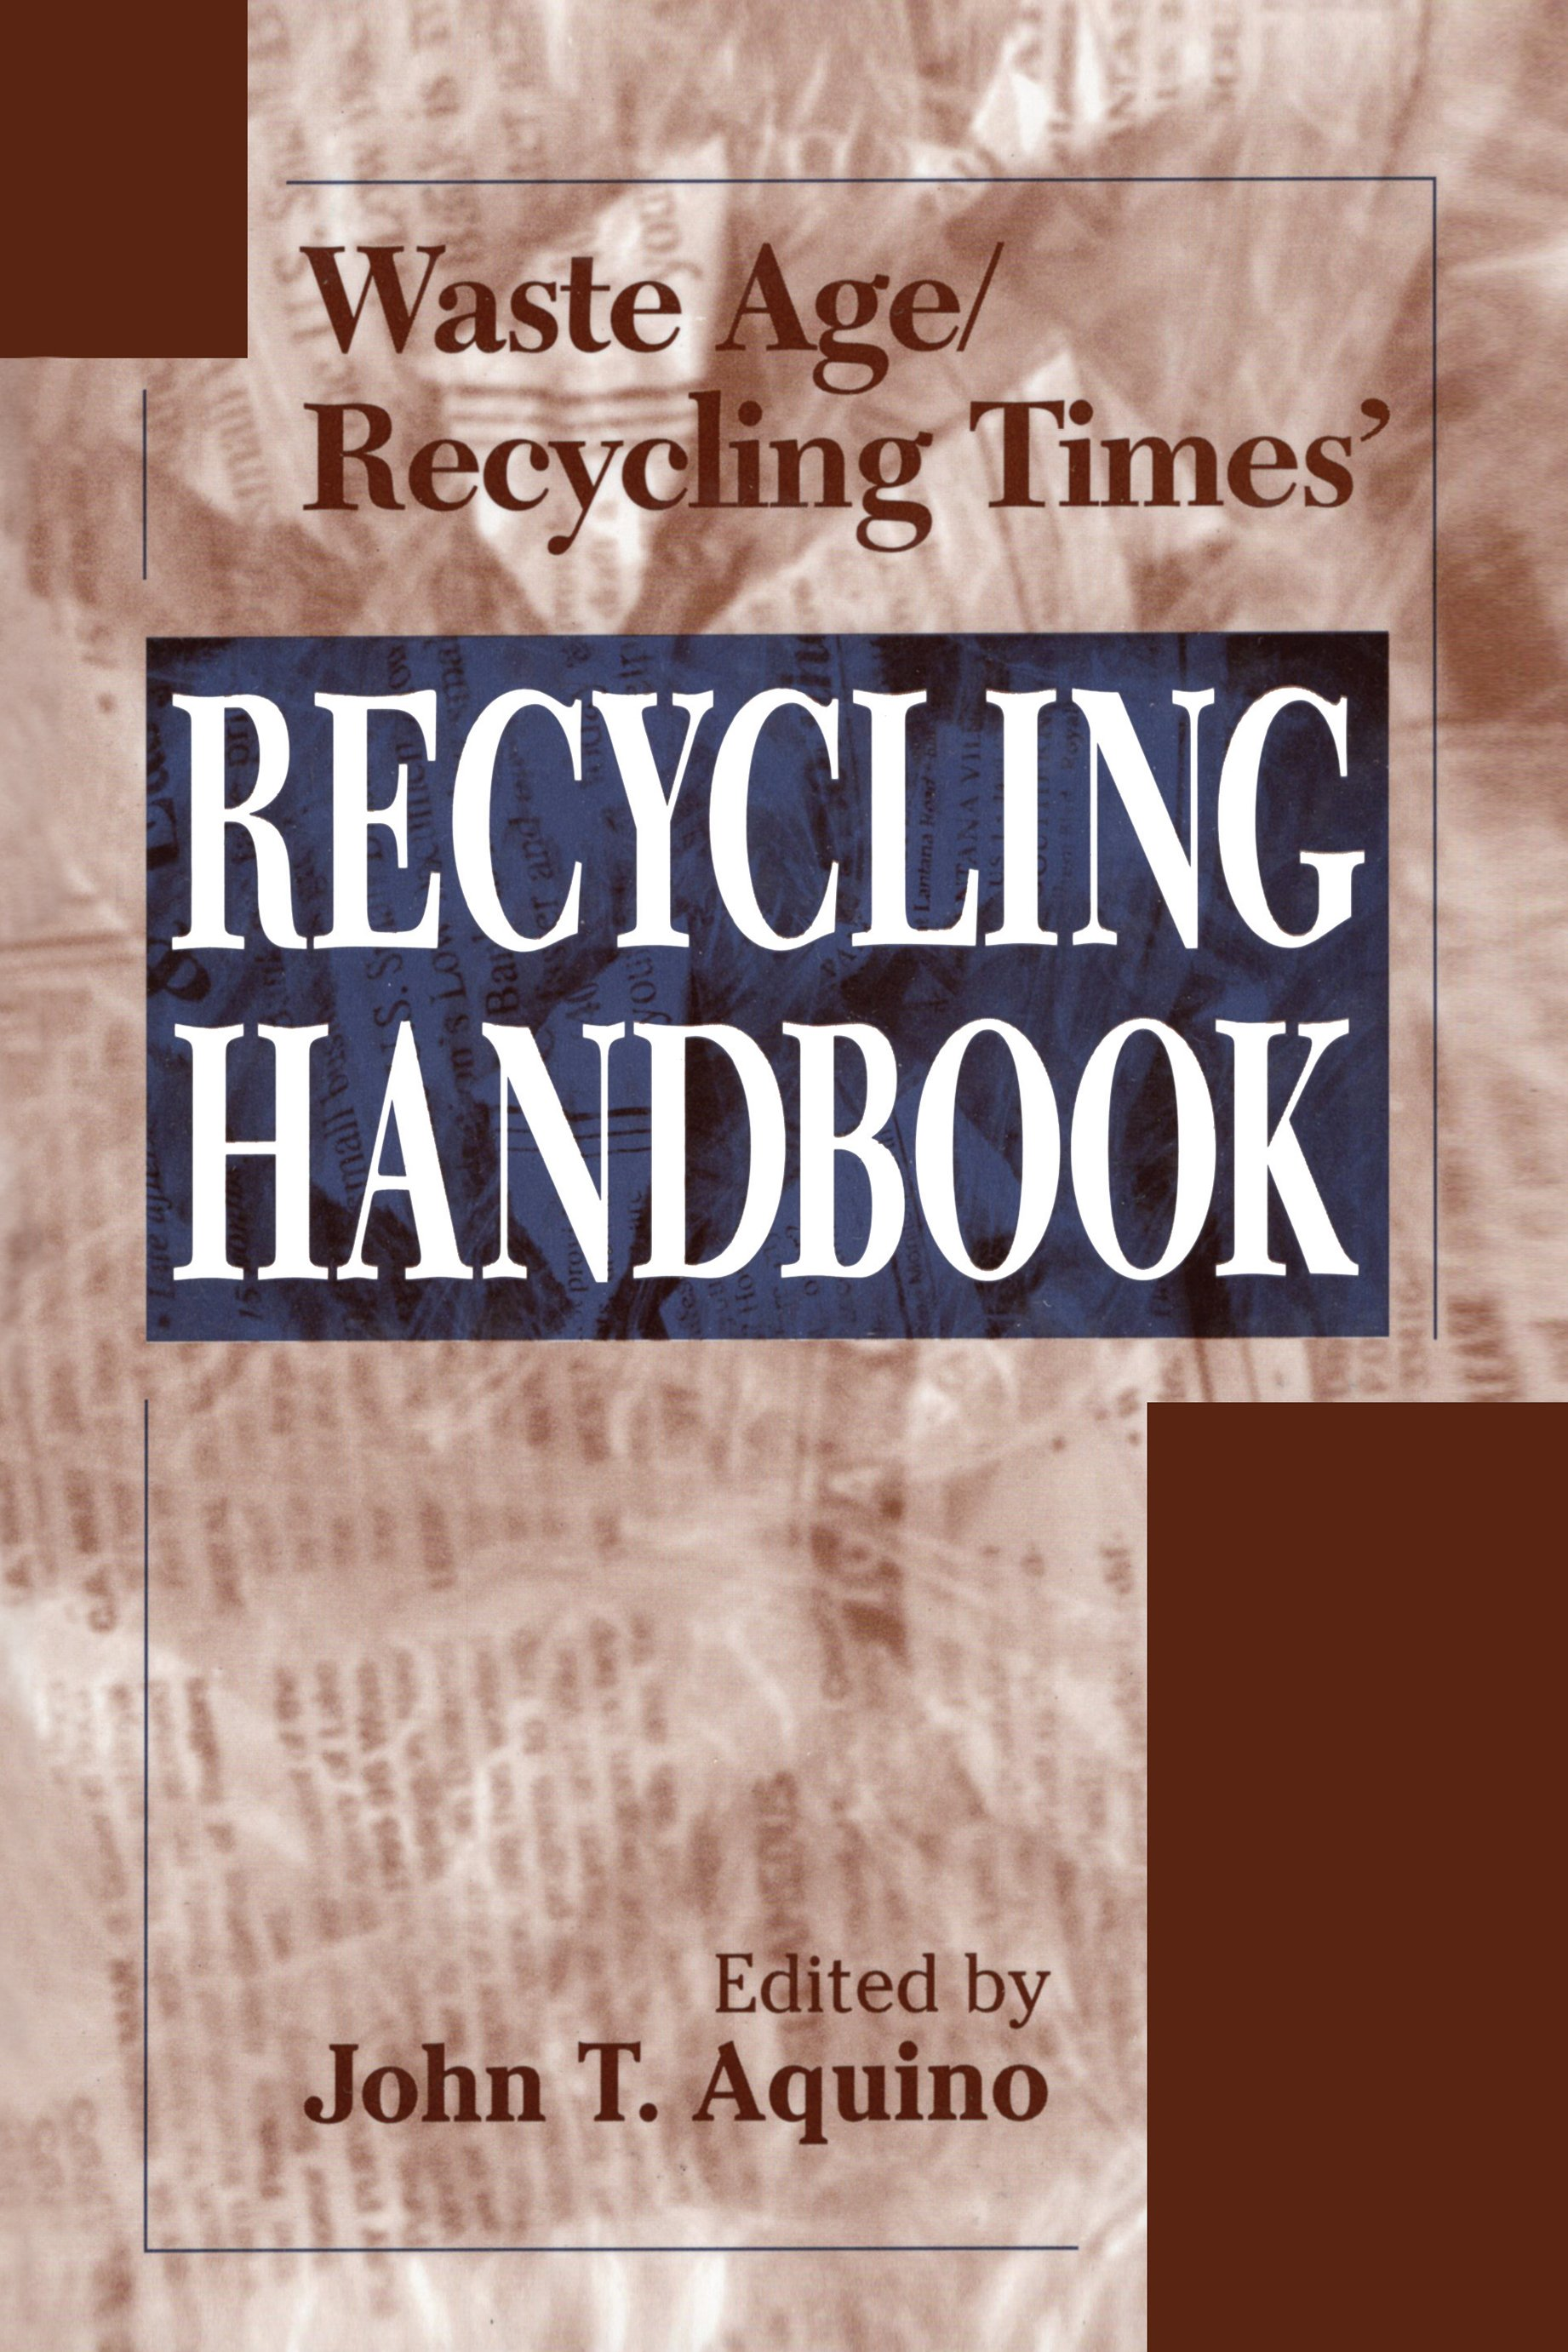 Waste Age and Recycling Times